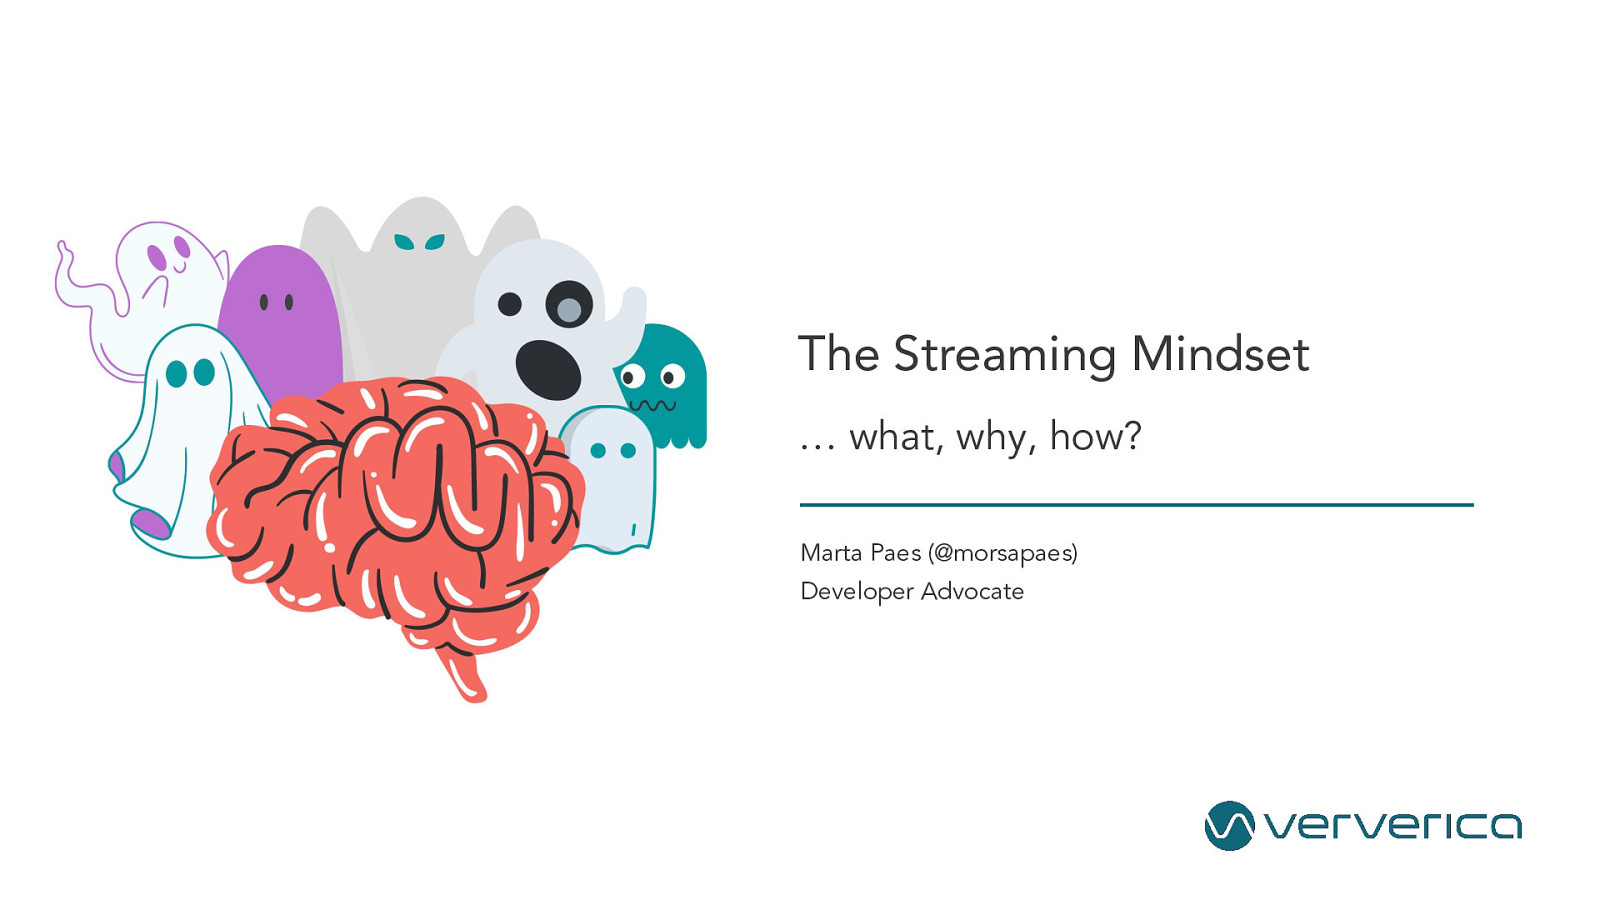 The Streaming Mindset